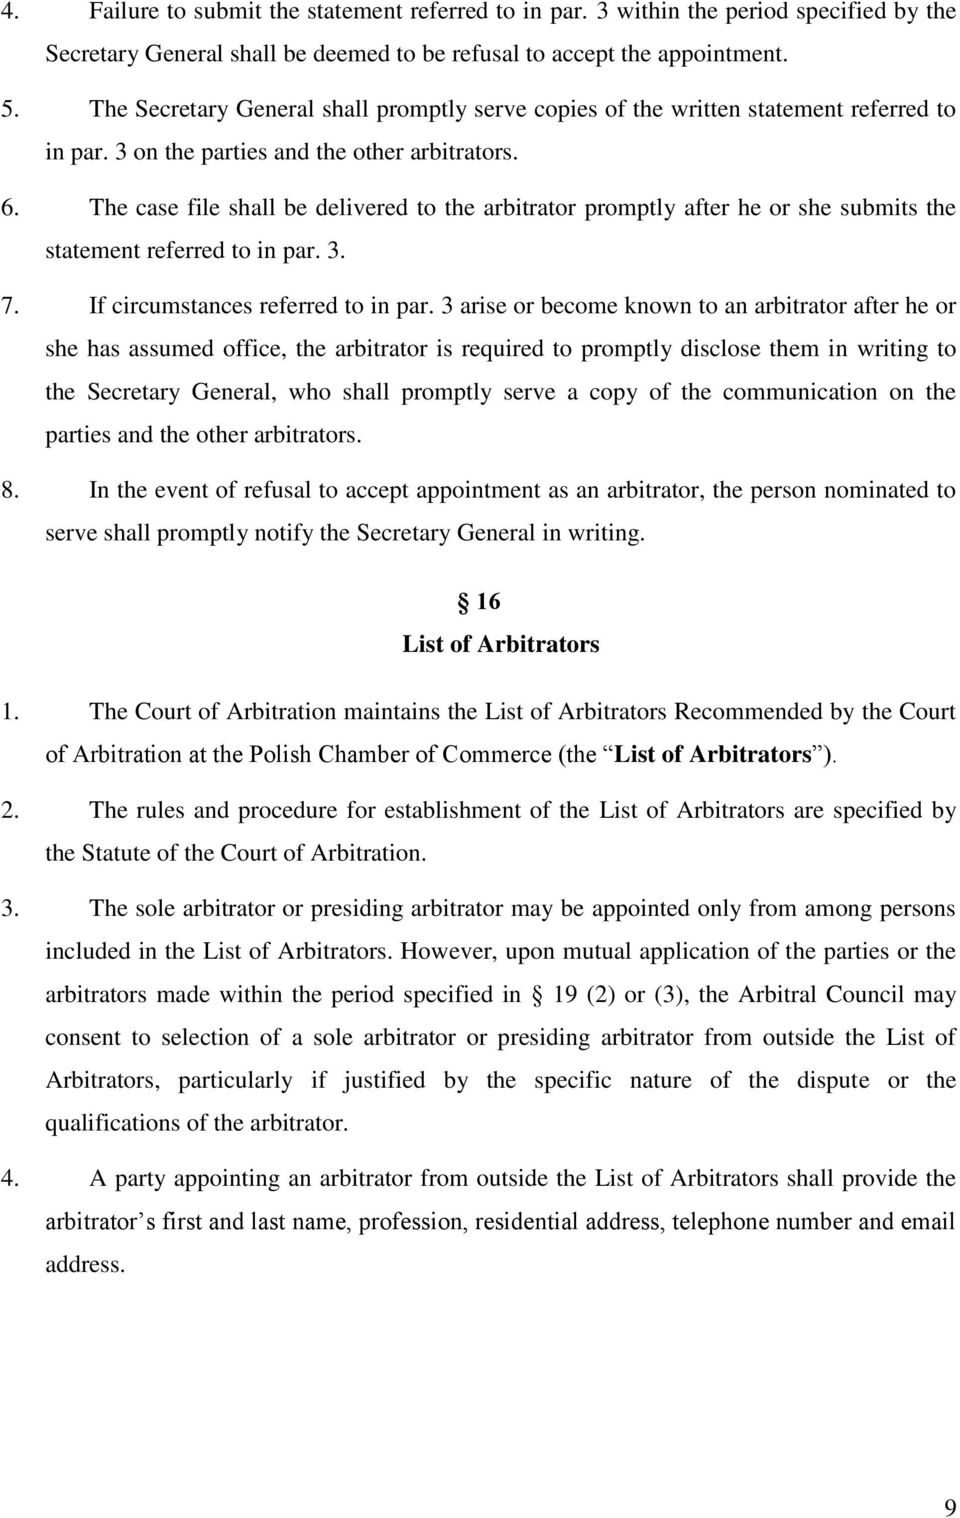 The case file shall be delivered to the arbitrator promptly after he or she submits the statement referred to in par. 3. 7. If circumstances referred to in par.